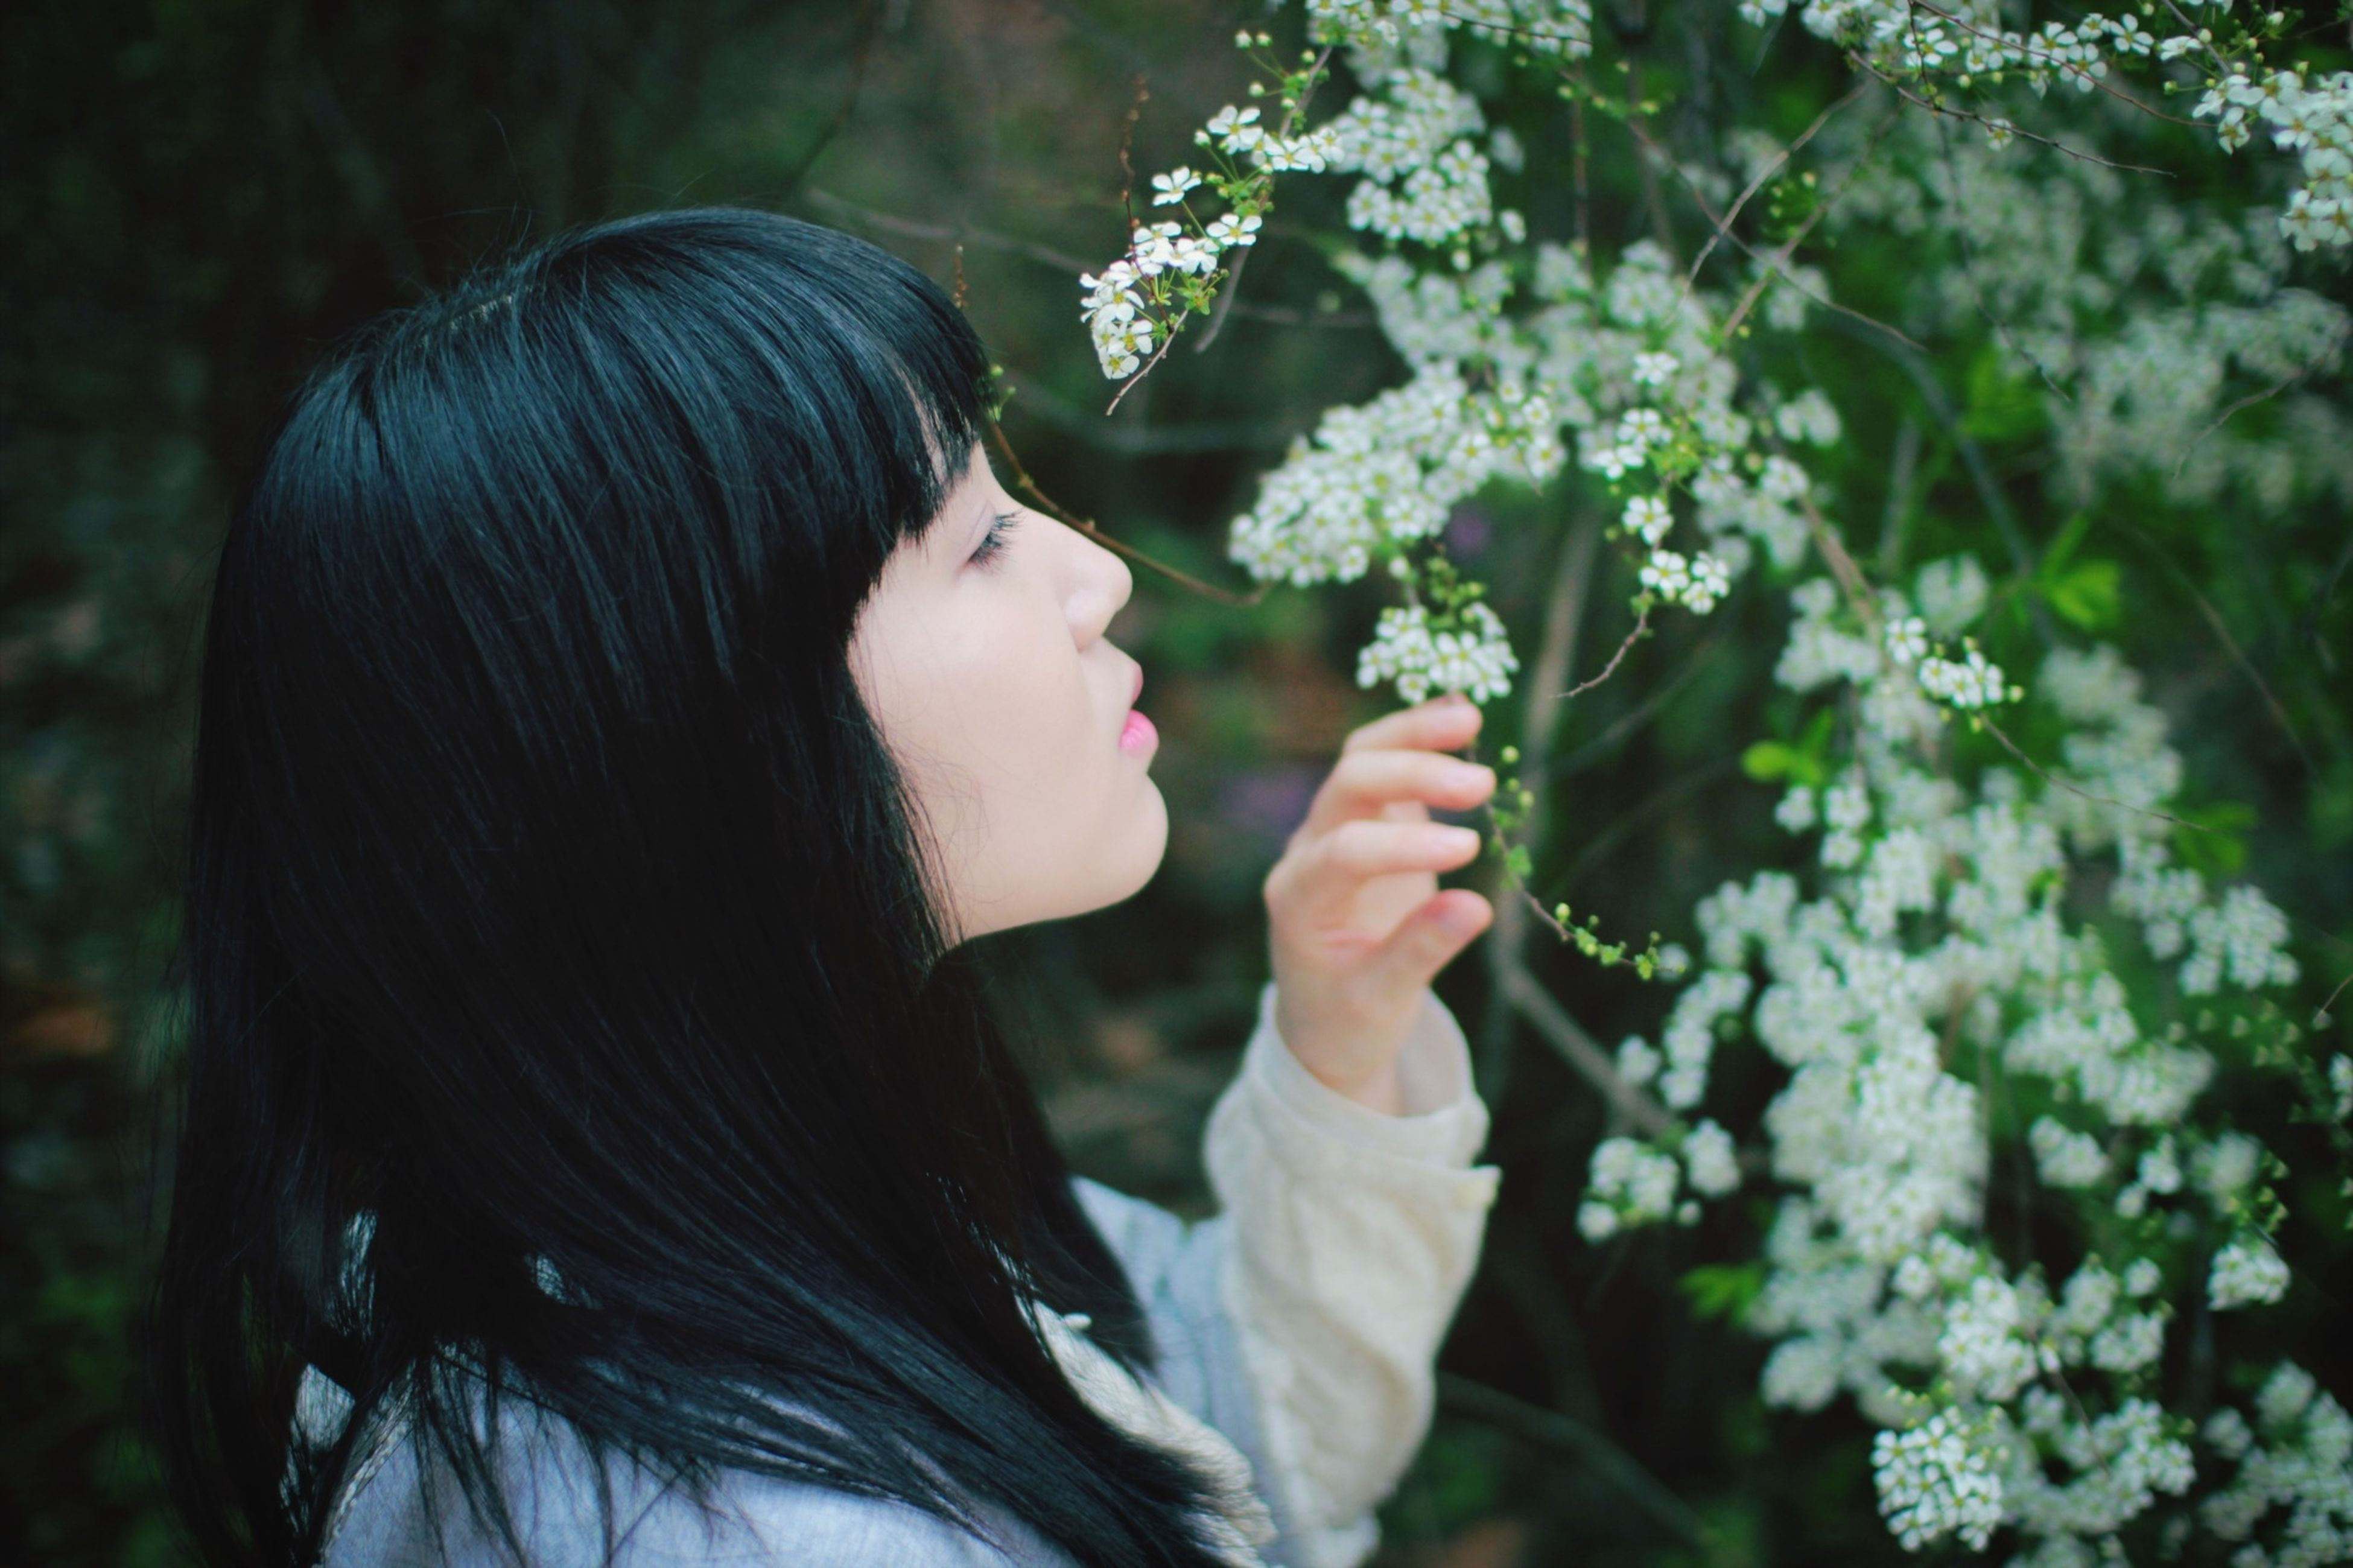 lifestyles, young women, young adult, flower, long hair, focus on foreground, person, leisure activity, casual clothing, waist up, headshot, holding, front view, close-up, plant, standing, nature